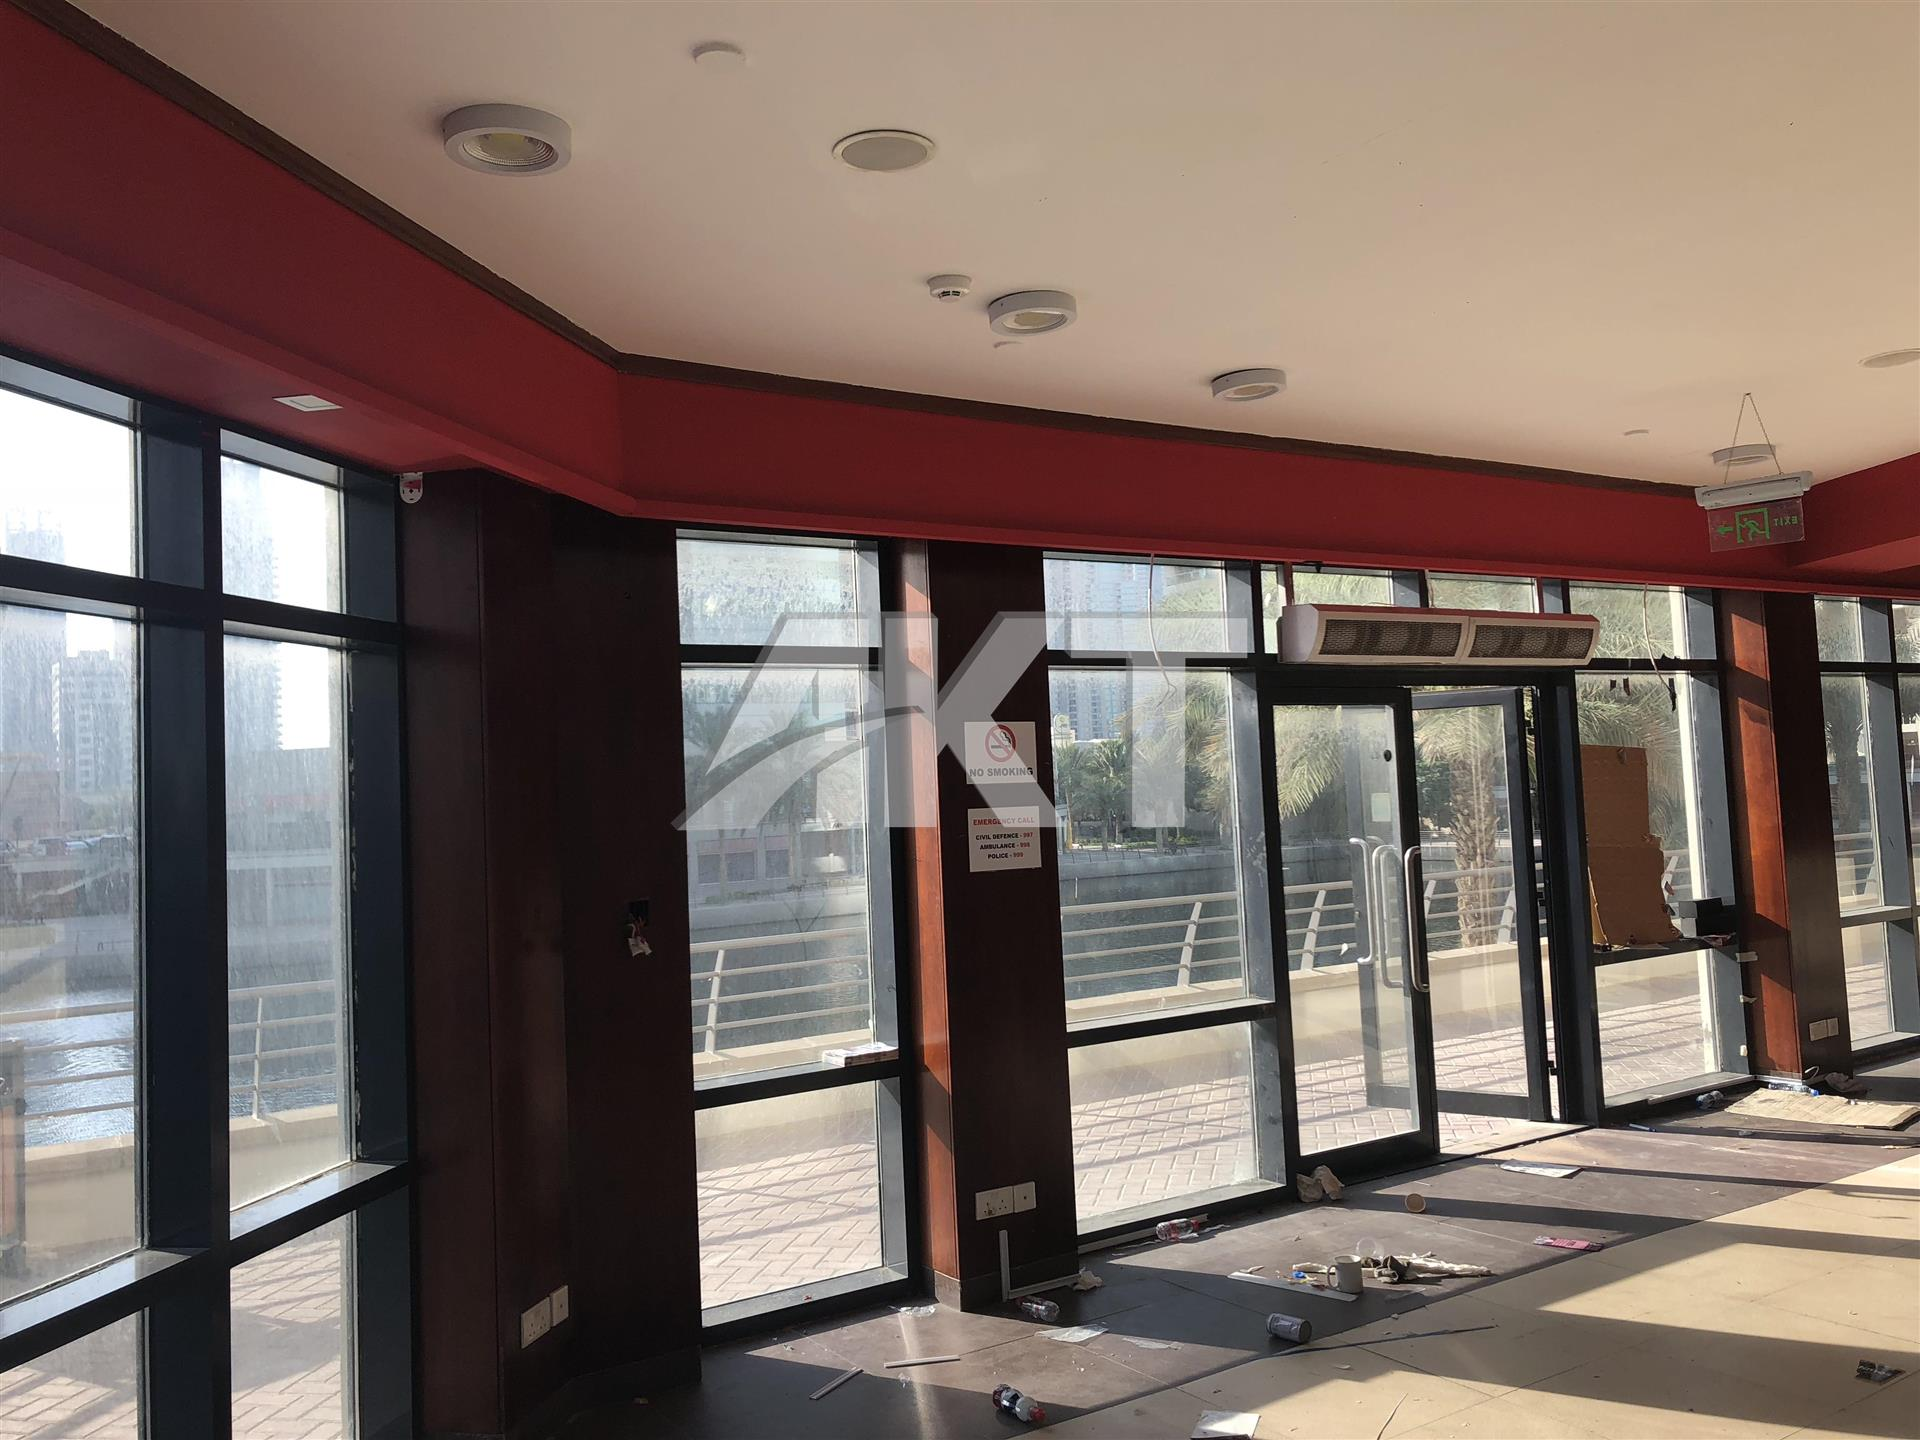 230 K / Fully Fitted Shope /Full Lake View / With Storage / JLT